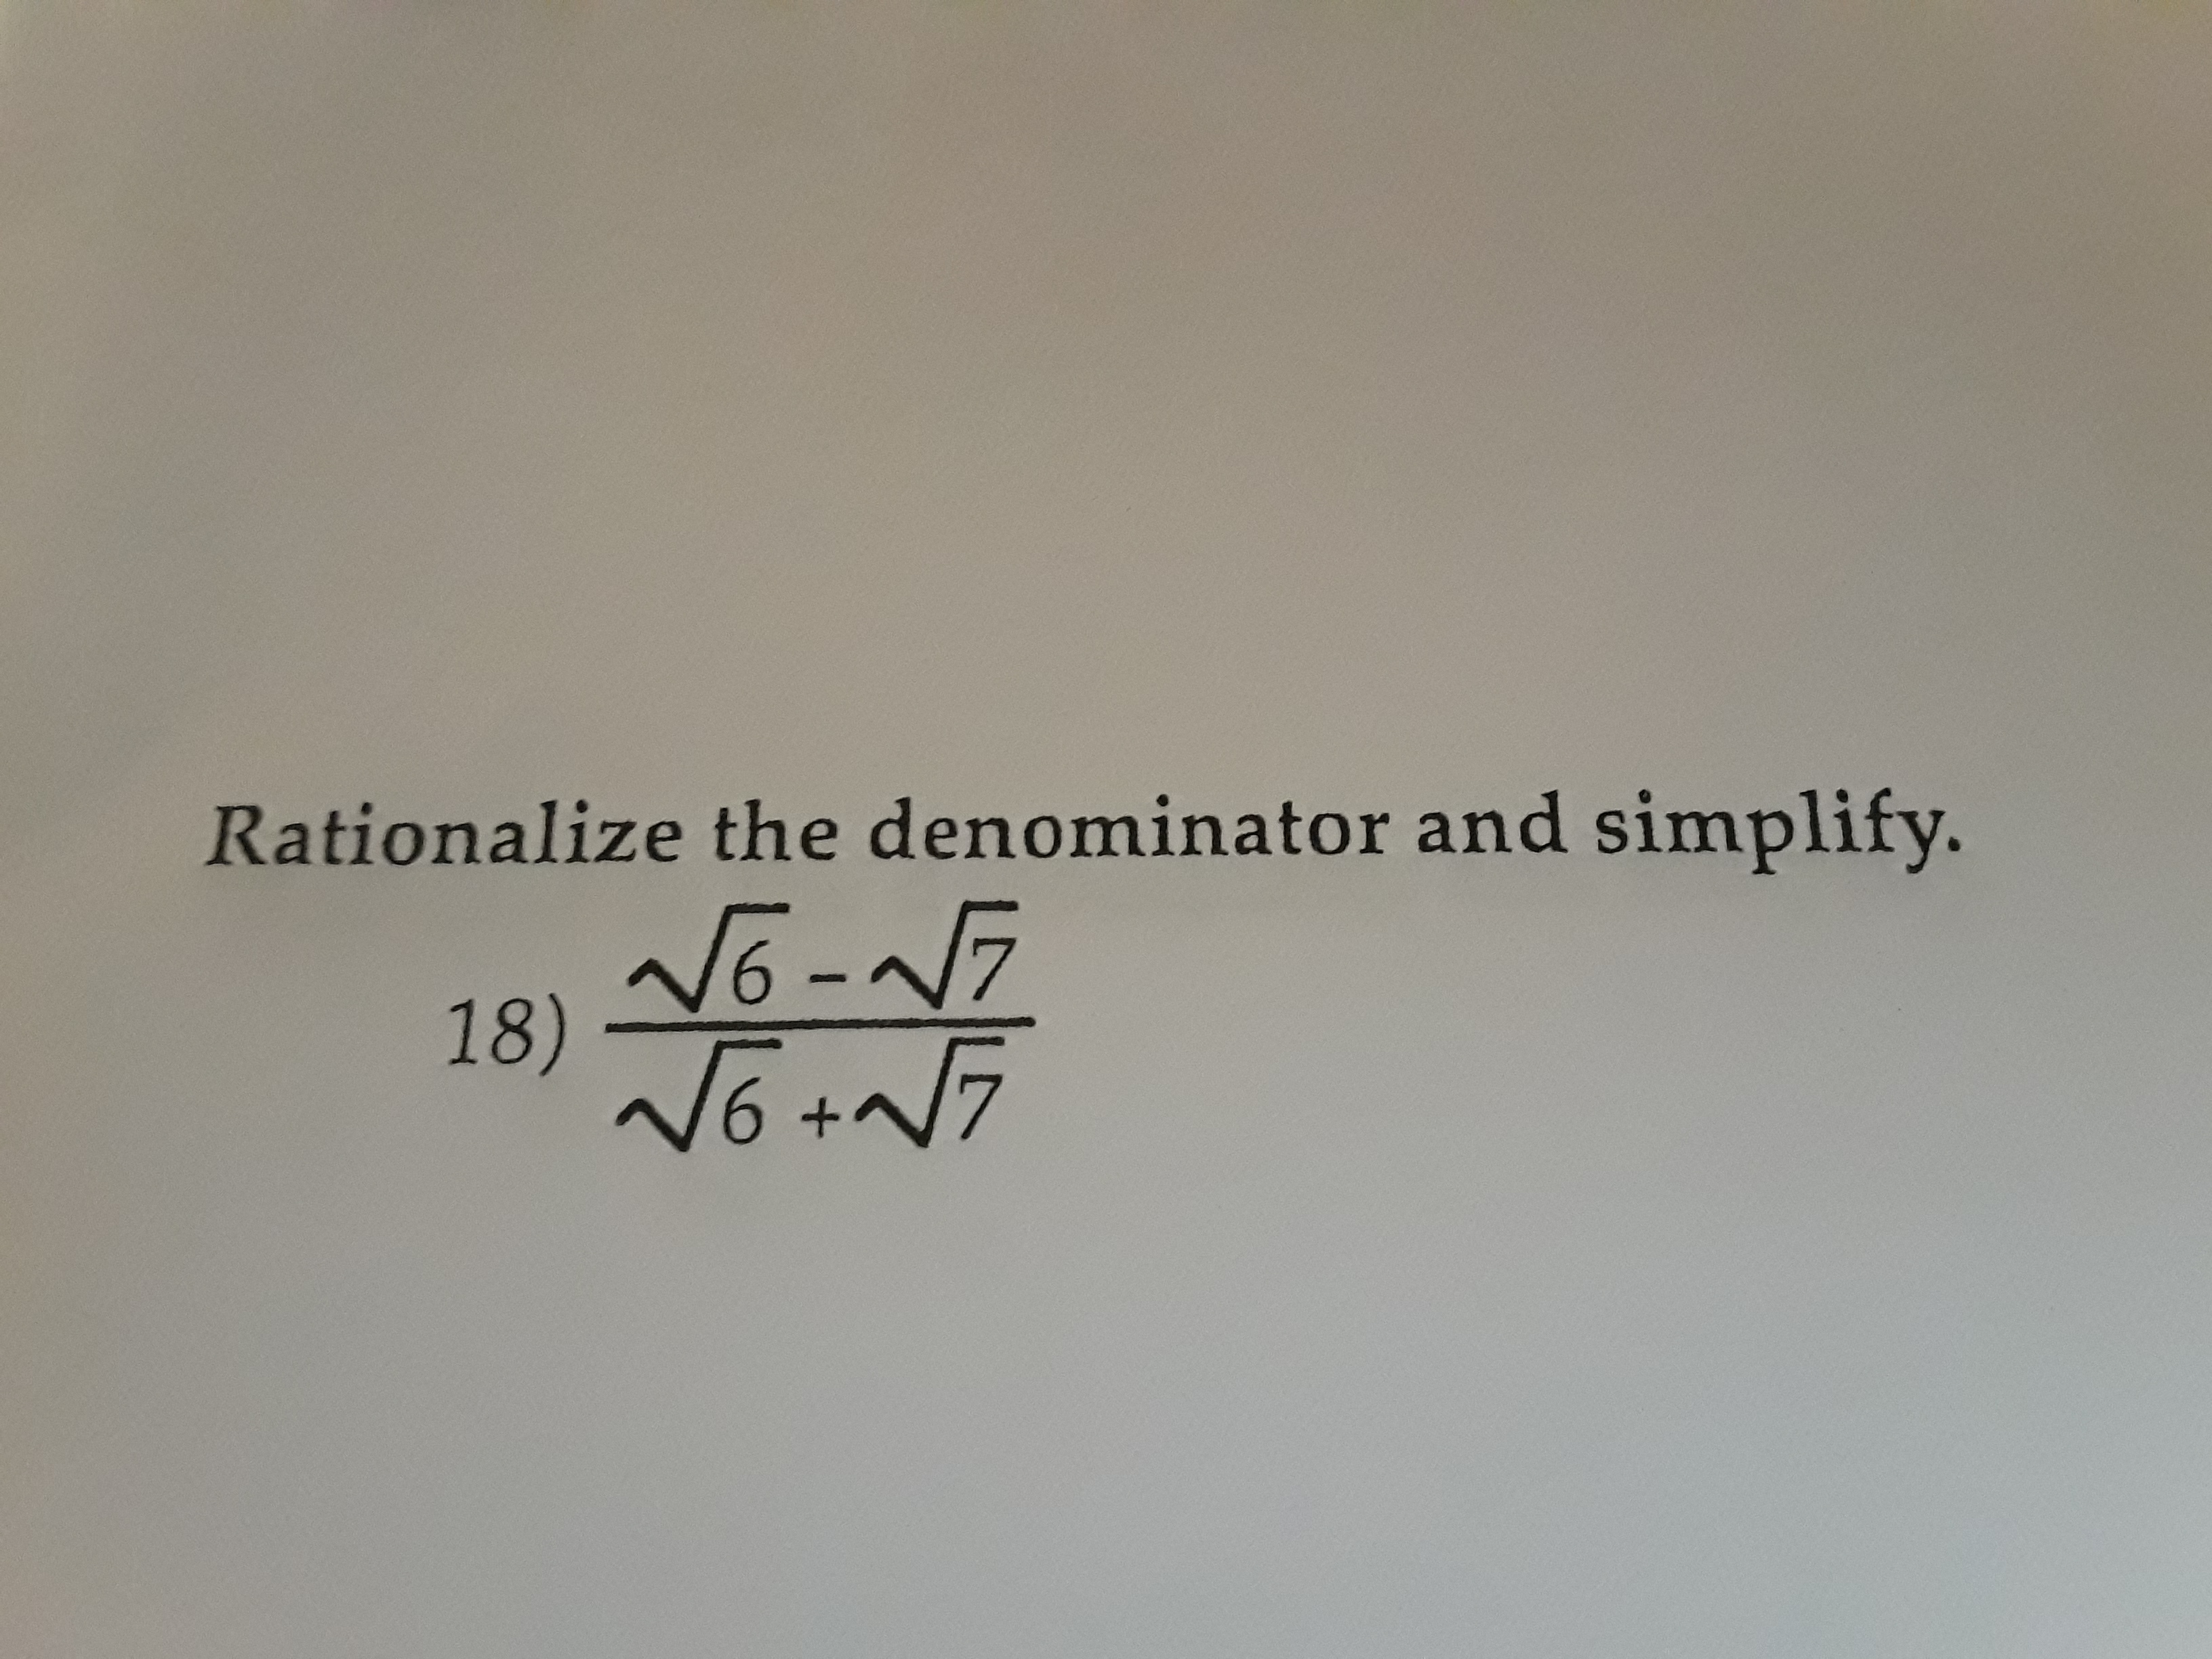 Rationalize the denominator and simplify. 6 NG-N7 18) +A